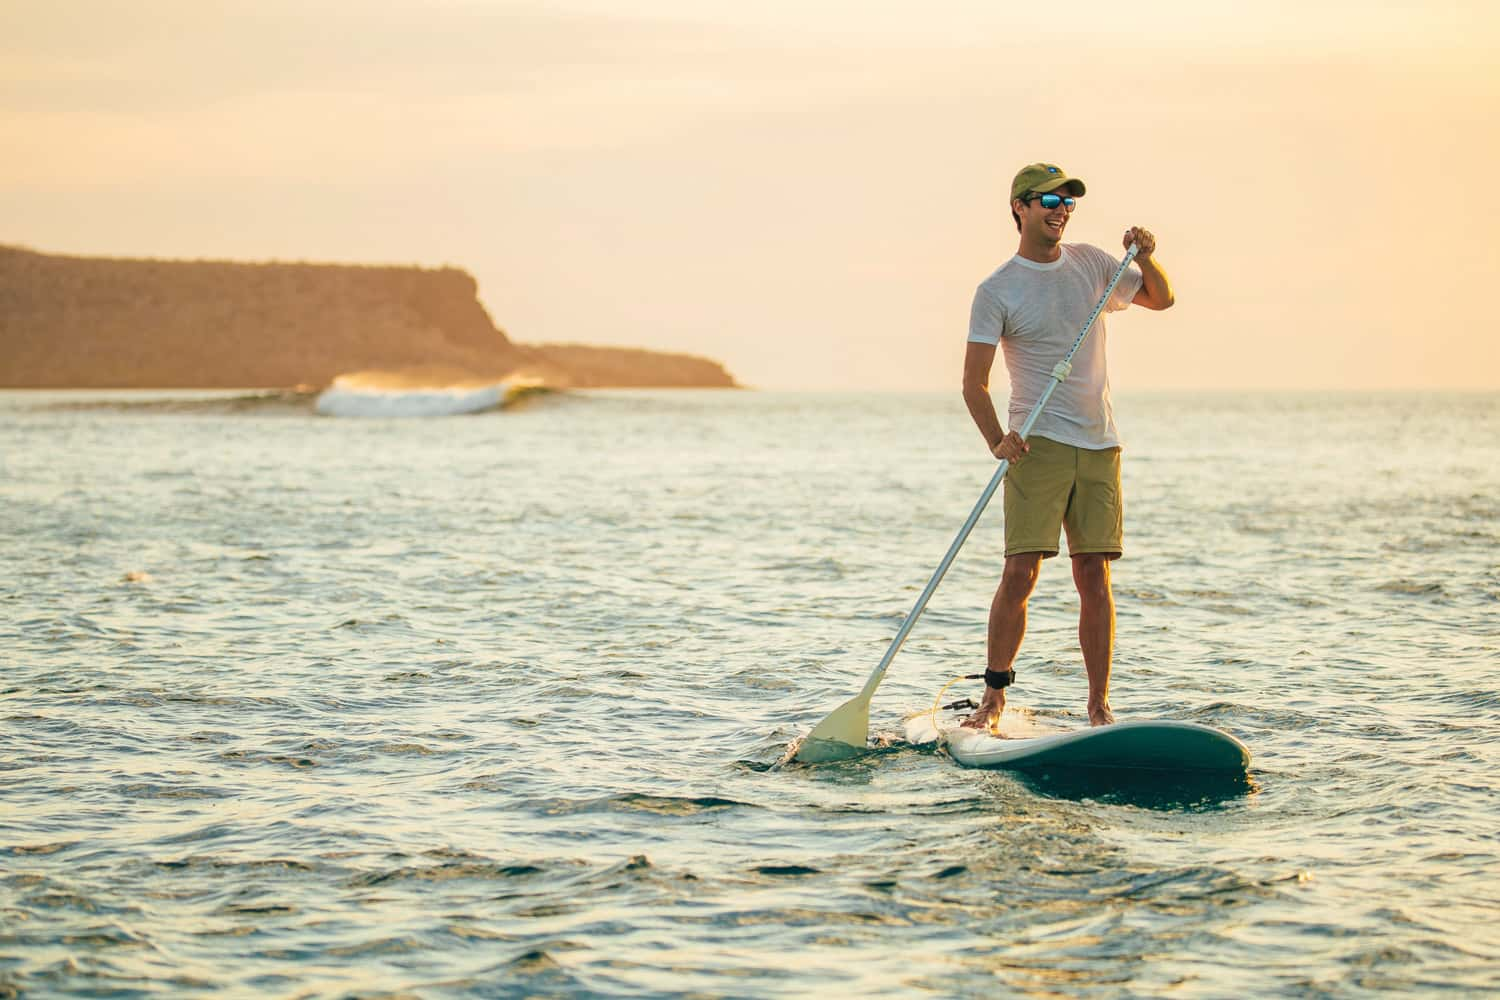 Guests can try SUP (Stand Up Paddleboard) on Lindblad Expeditions-National Geographic's 3- and 4-day sailings in the Sea of Cortez.